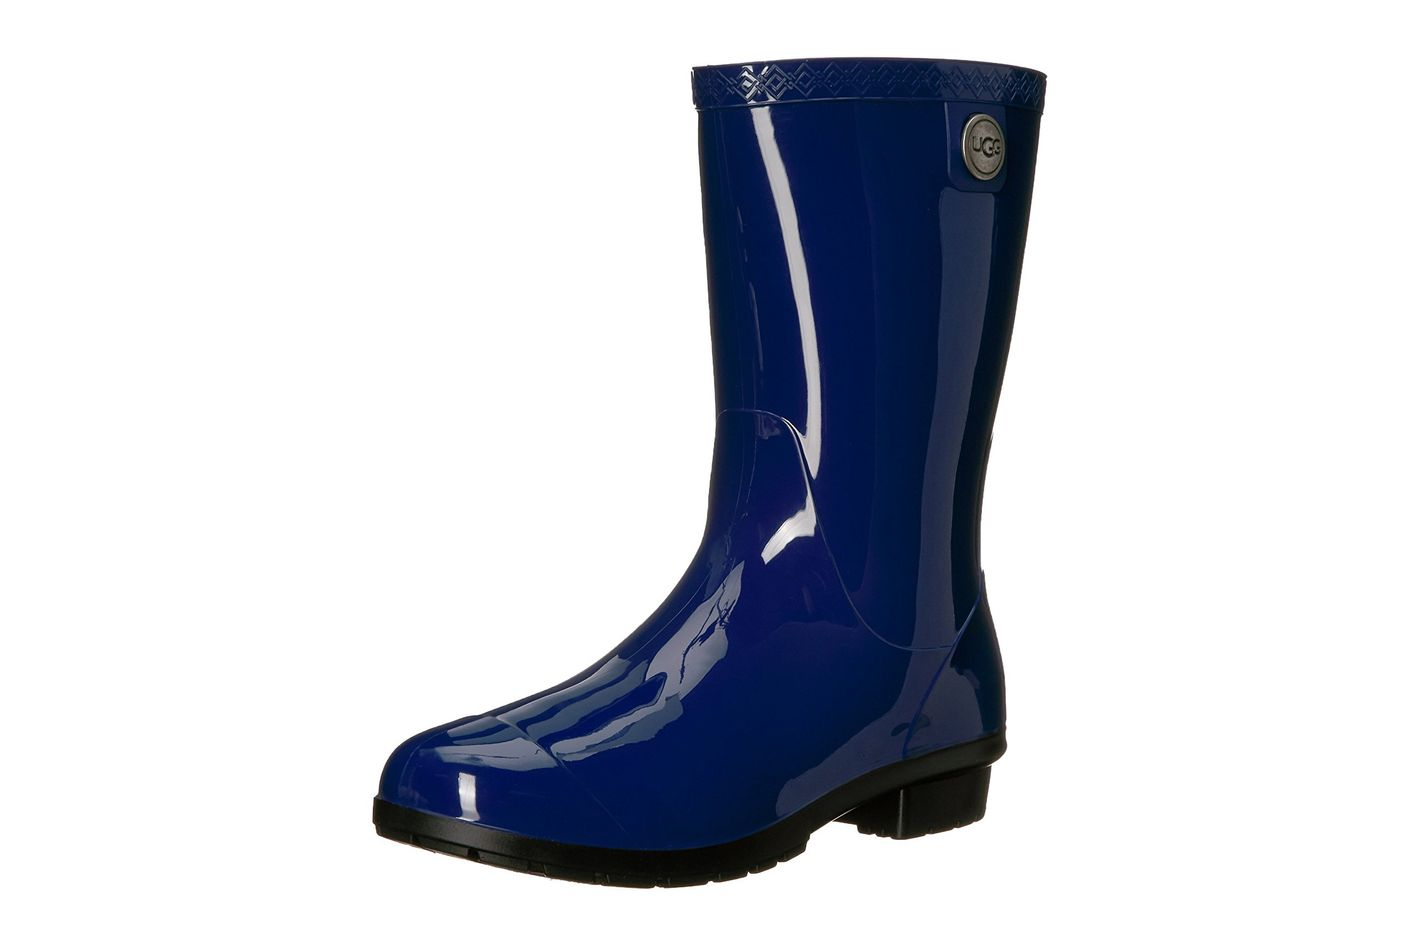 Daily Shoes Rain Boots Reviews